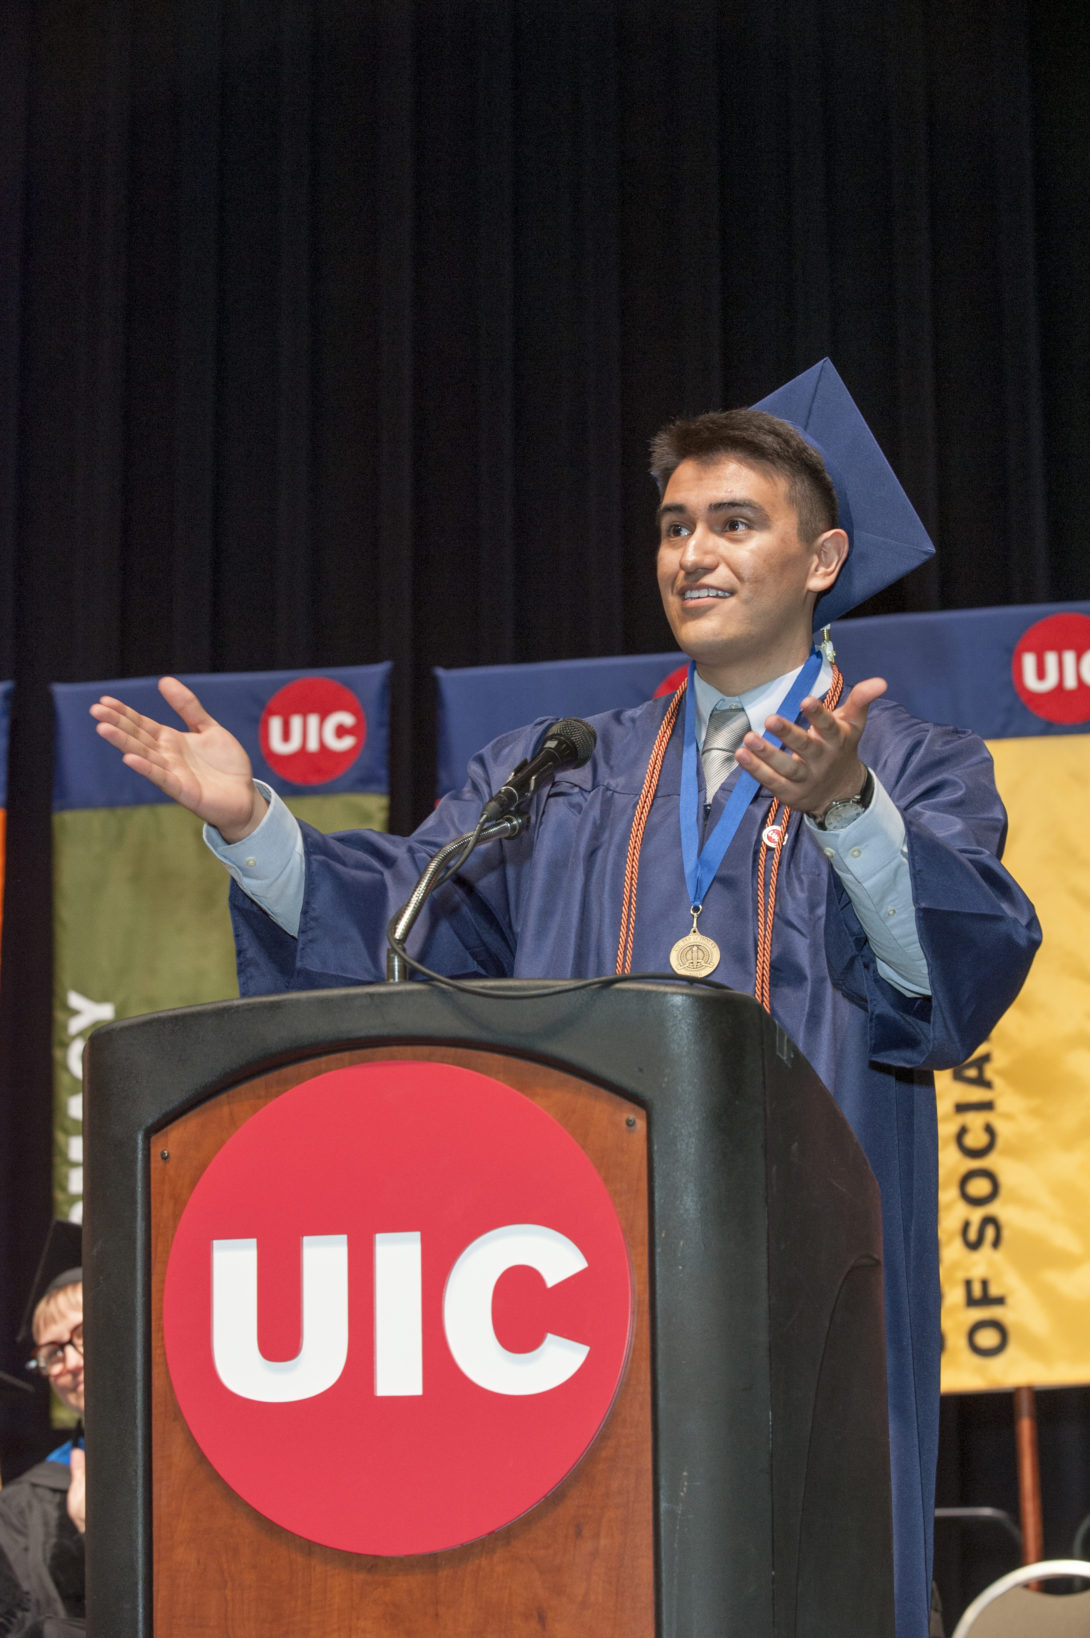 Photograph of a CUPPA graduate giving a speech during the ceremony.